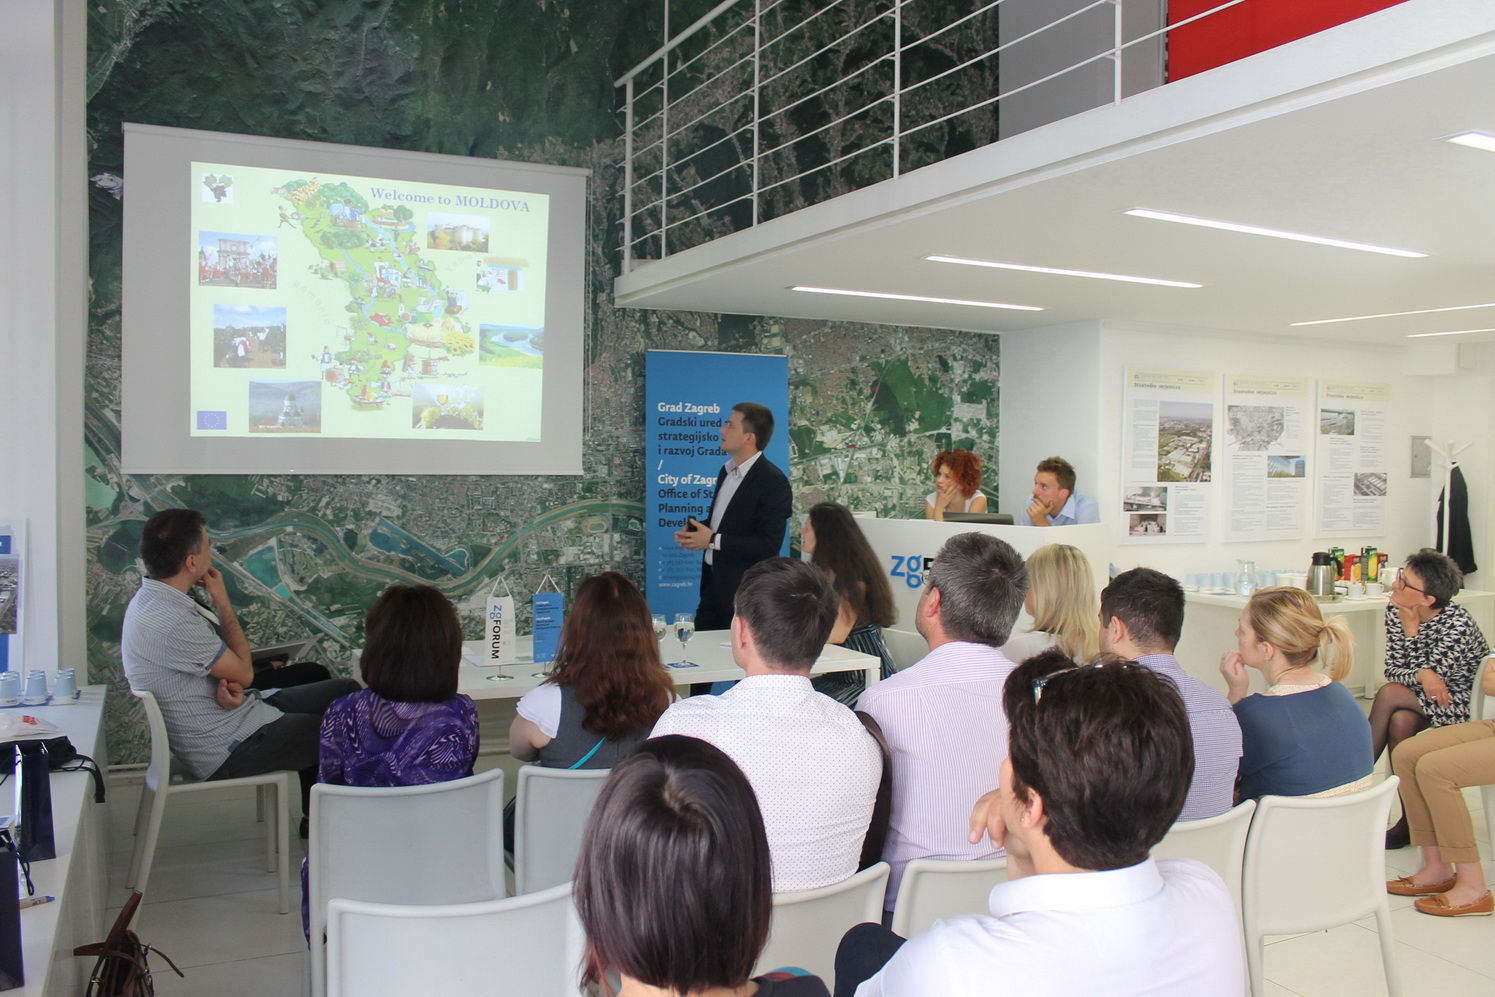 The picture shows the presentation held for the members of the Moldovan delegation.